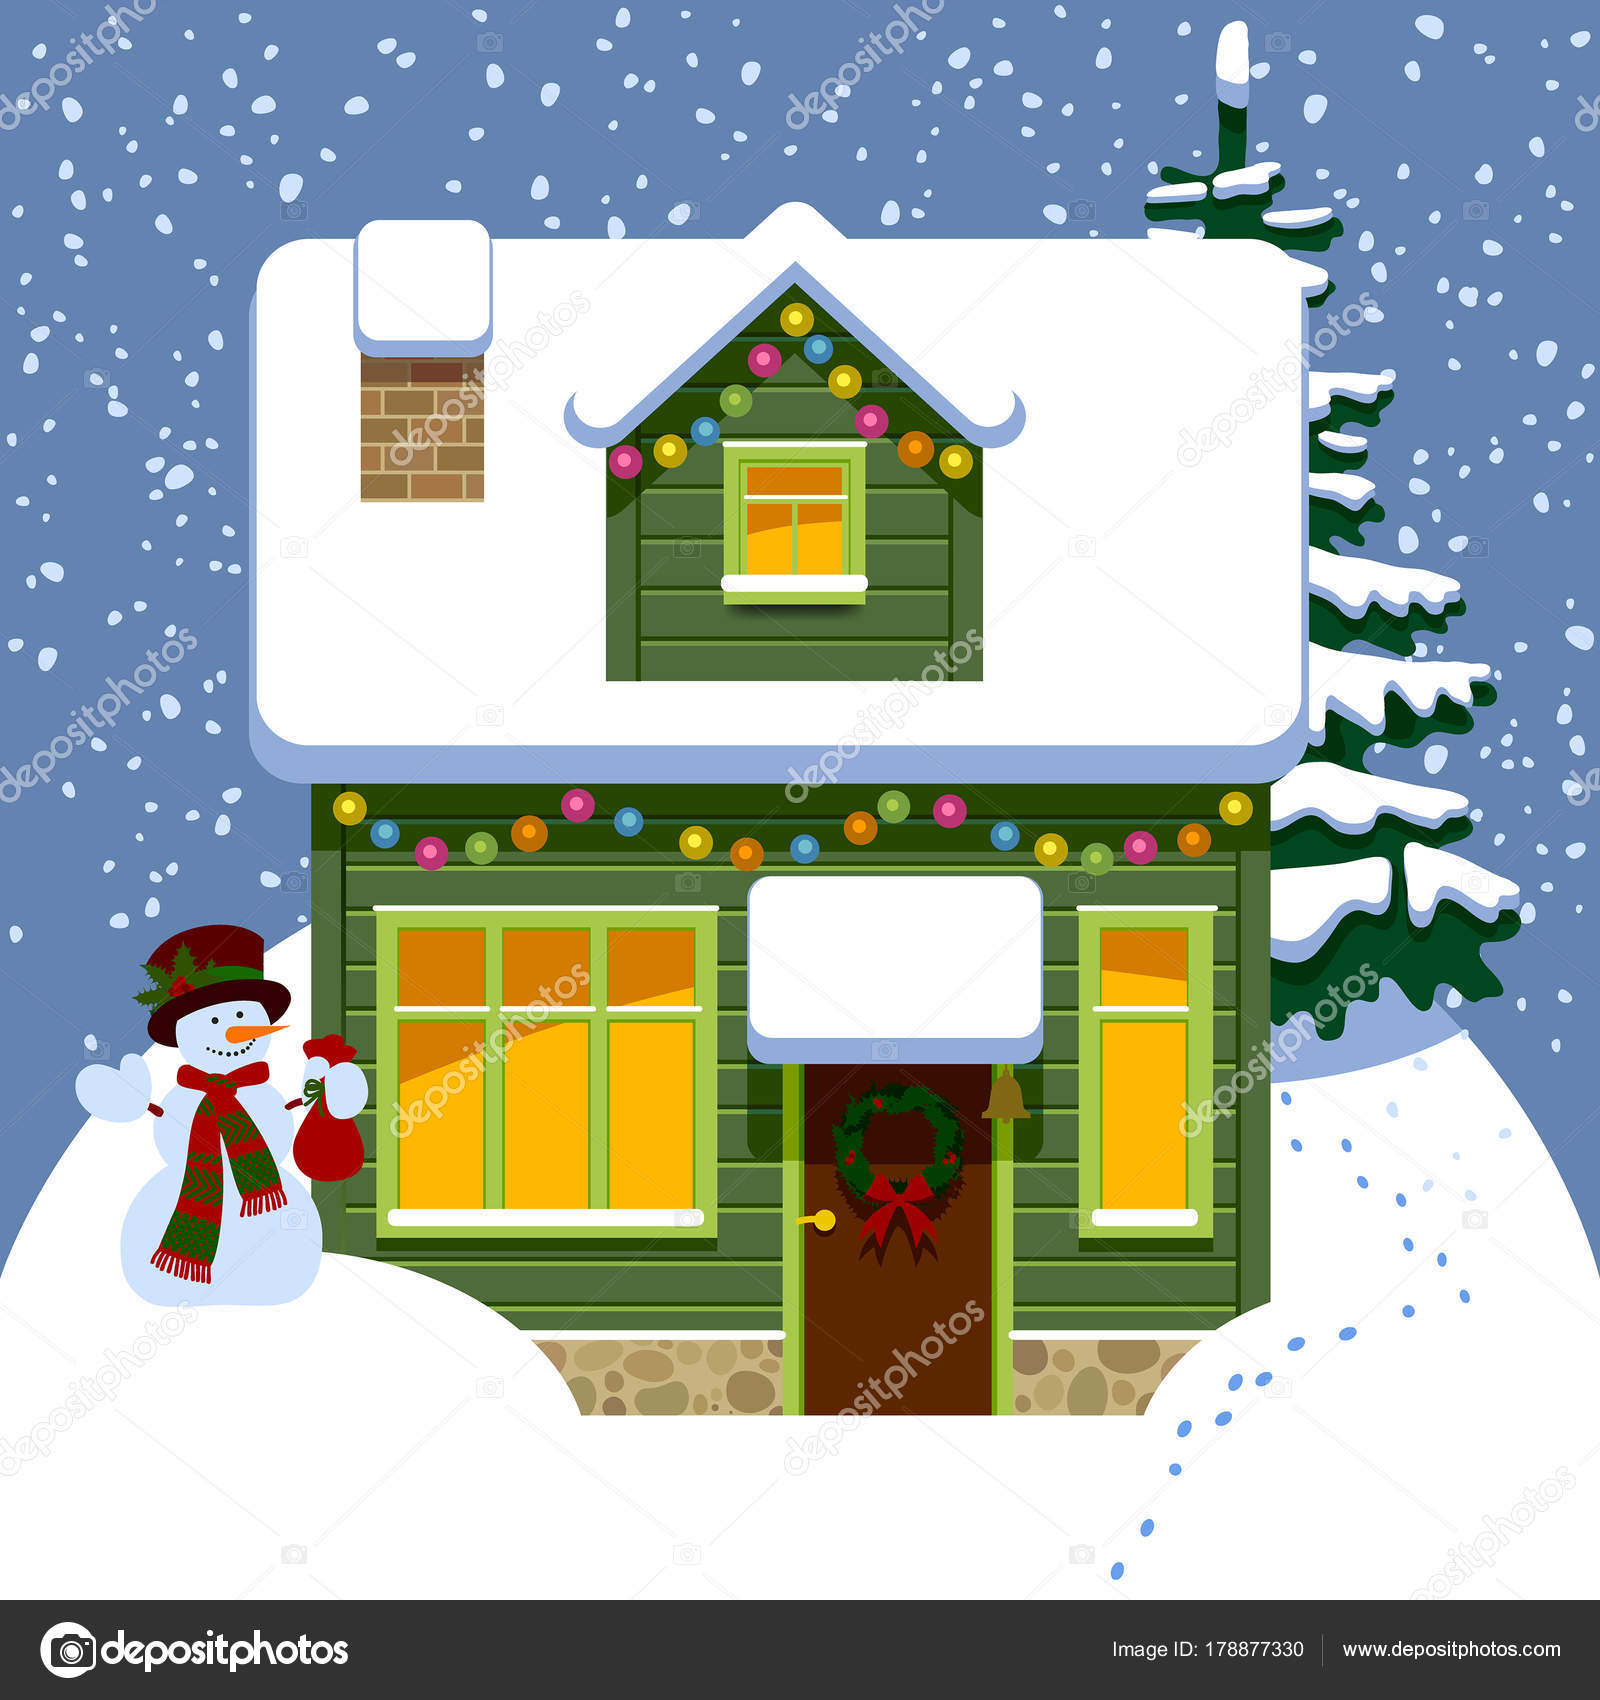 Green Wooden Christmas House In Winter Covered By Snow With Snowman And Spruce Drawing Flat Style Vector Illustration Maystra